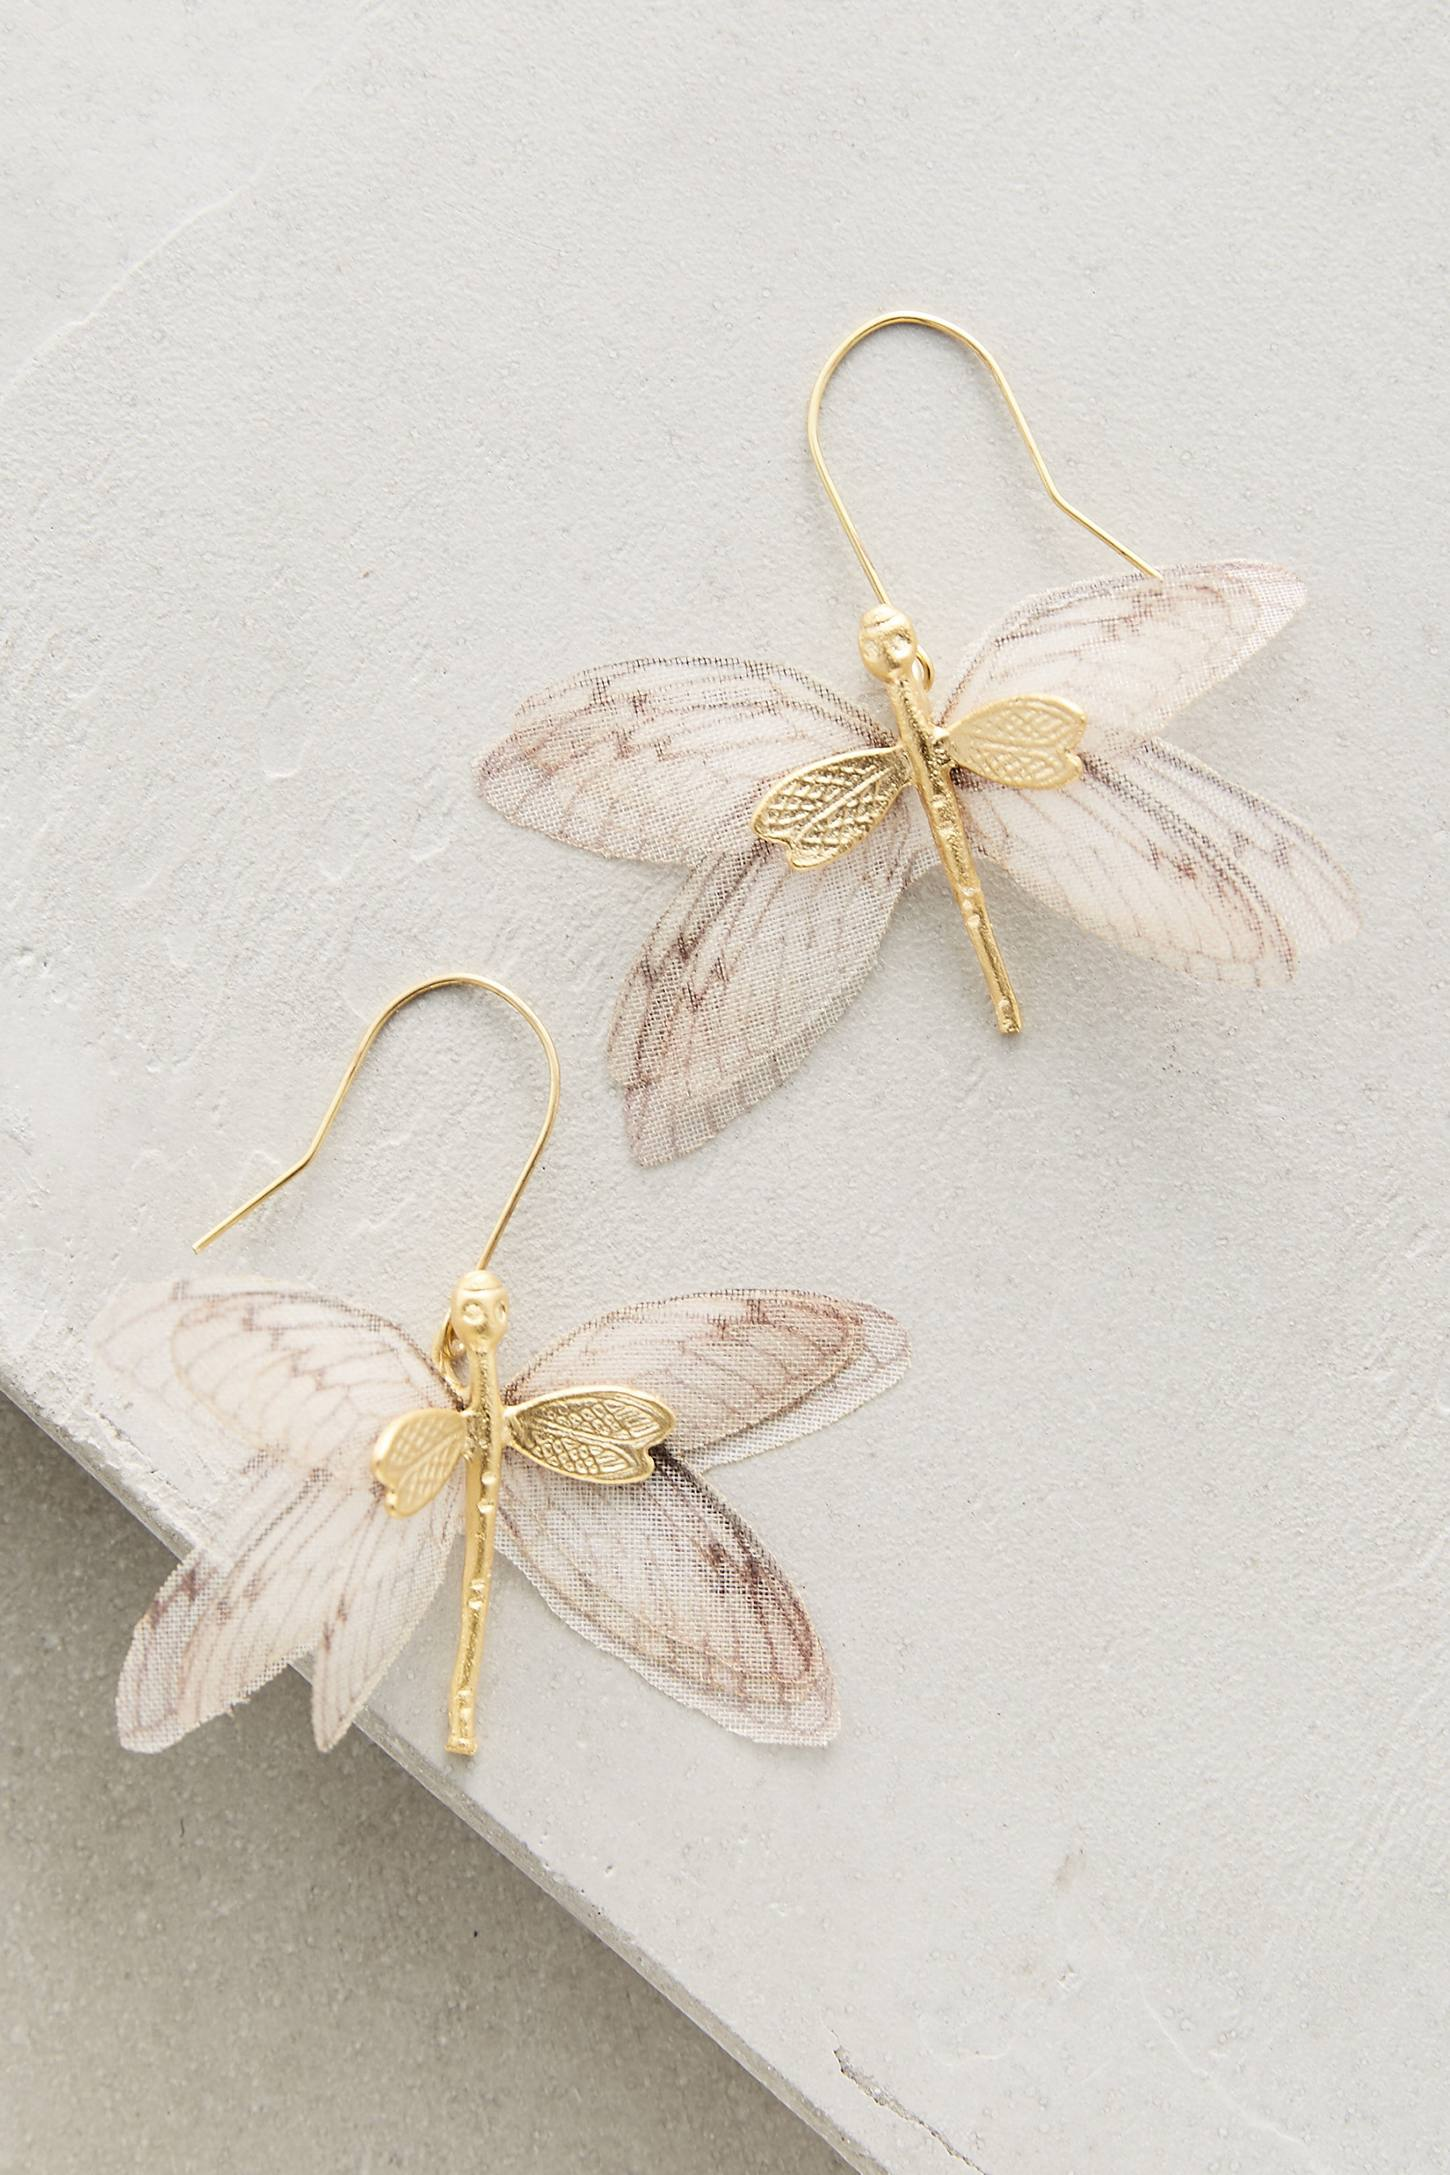 dragonfly-earrings-for-women-2016-anthropologie 2